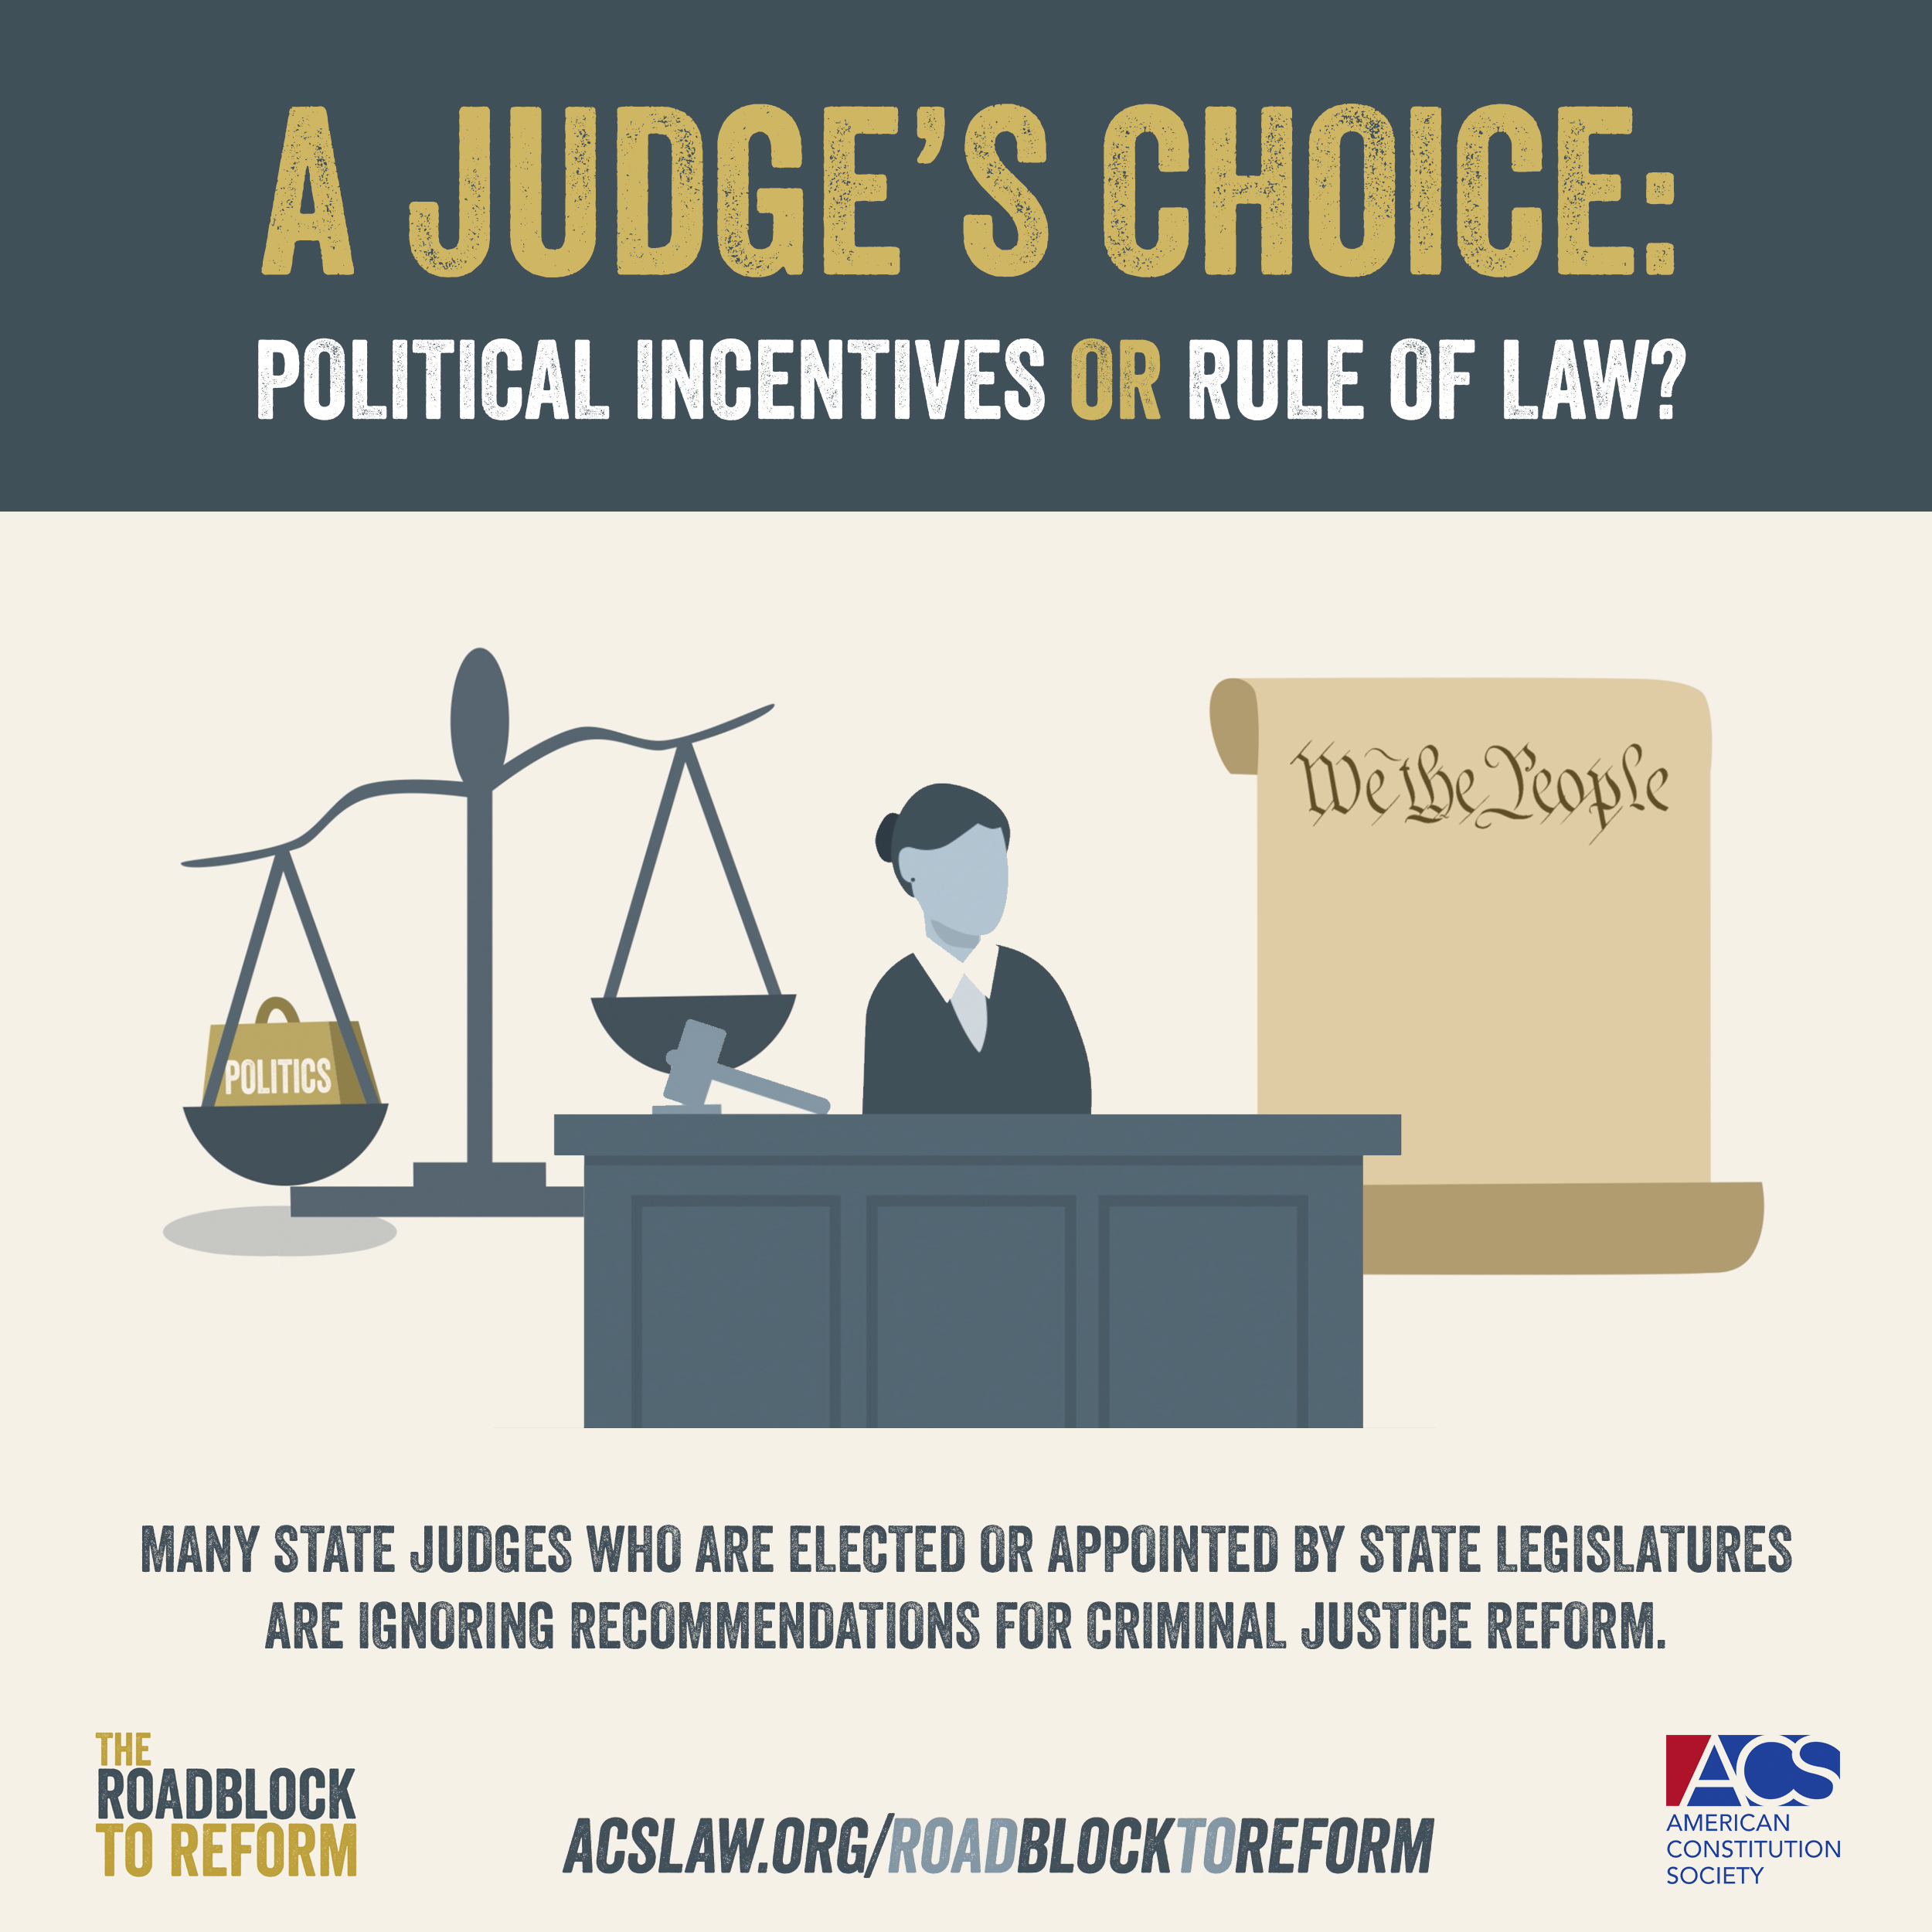 how does the method of judicial selection impact judicial impartiality and judicial independence